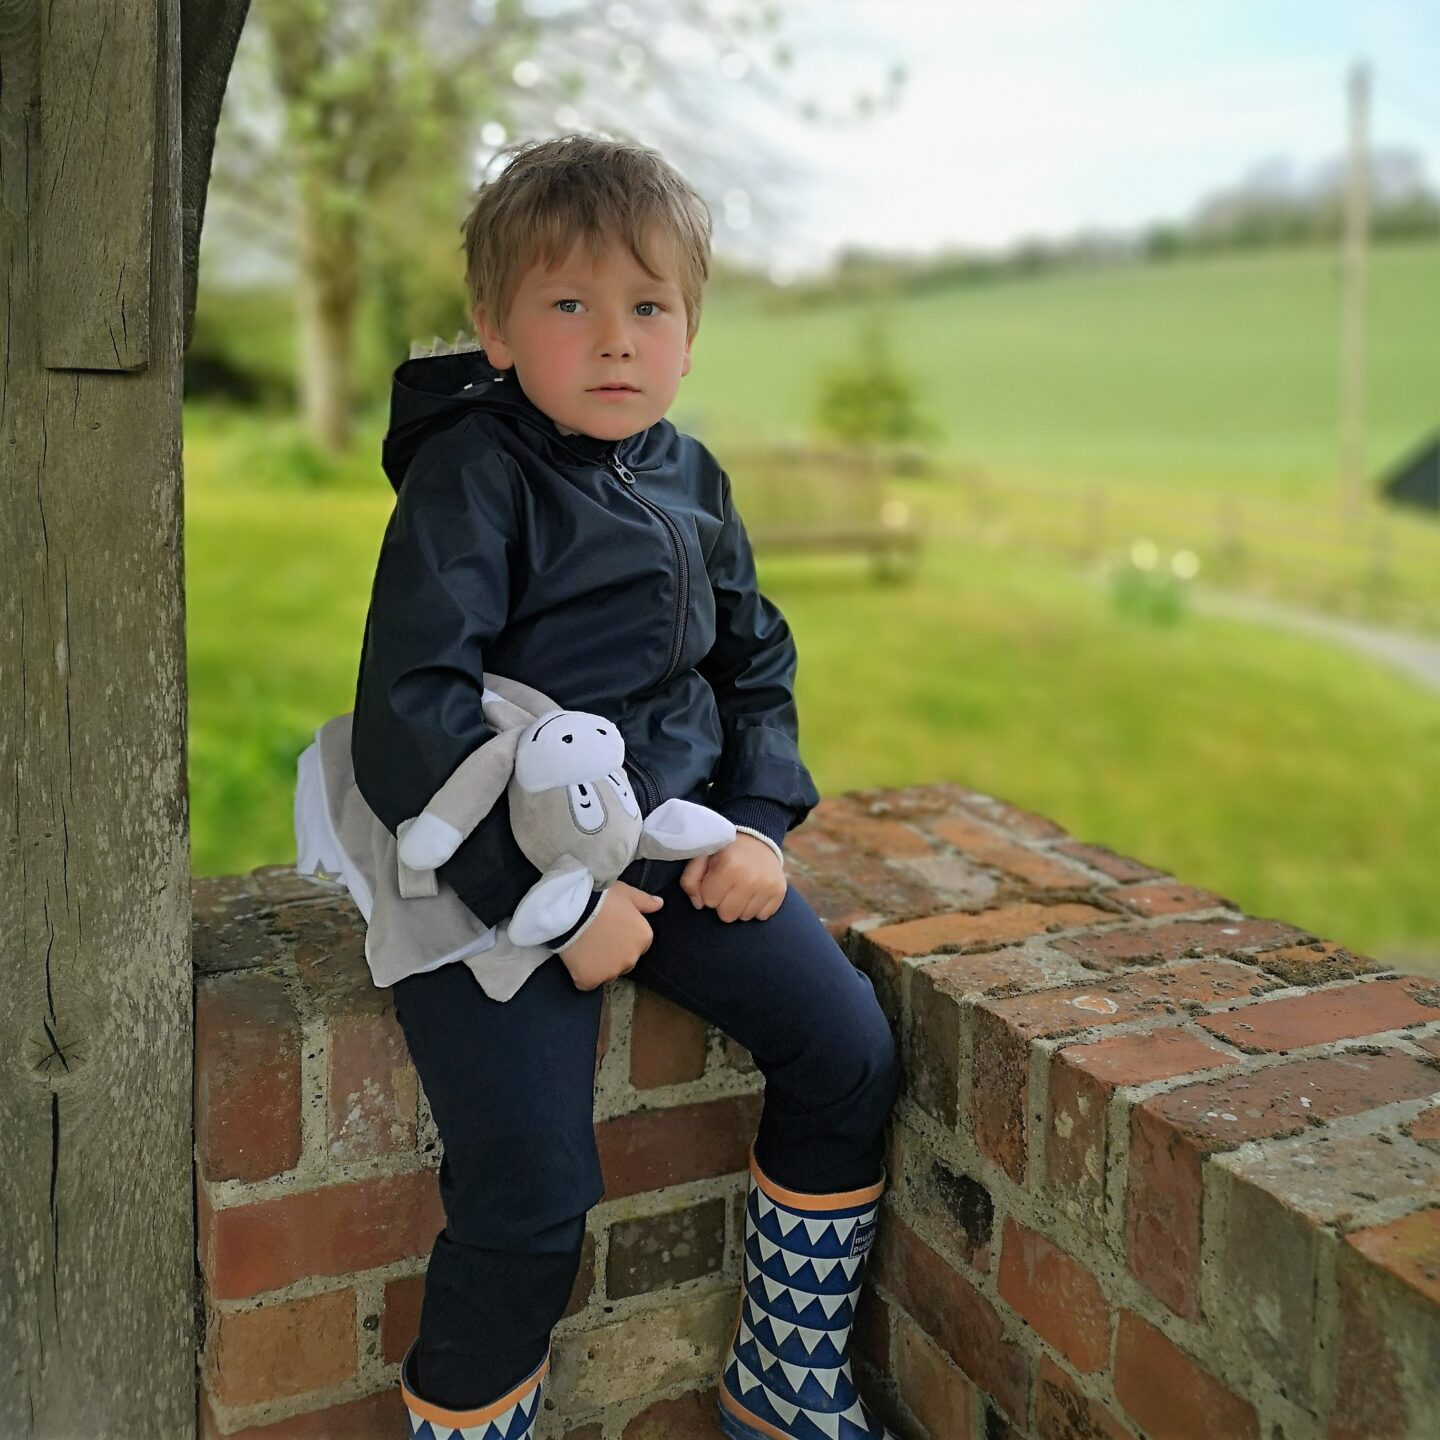 May 2021, Monthly Highlights, Life in Kent, Kent Villages, Family Walk, The Frenchie Mummy, Family Days Out, Kent Villages